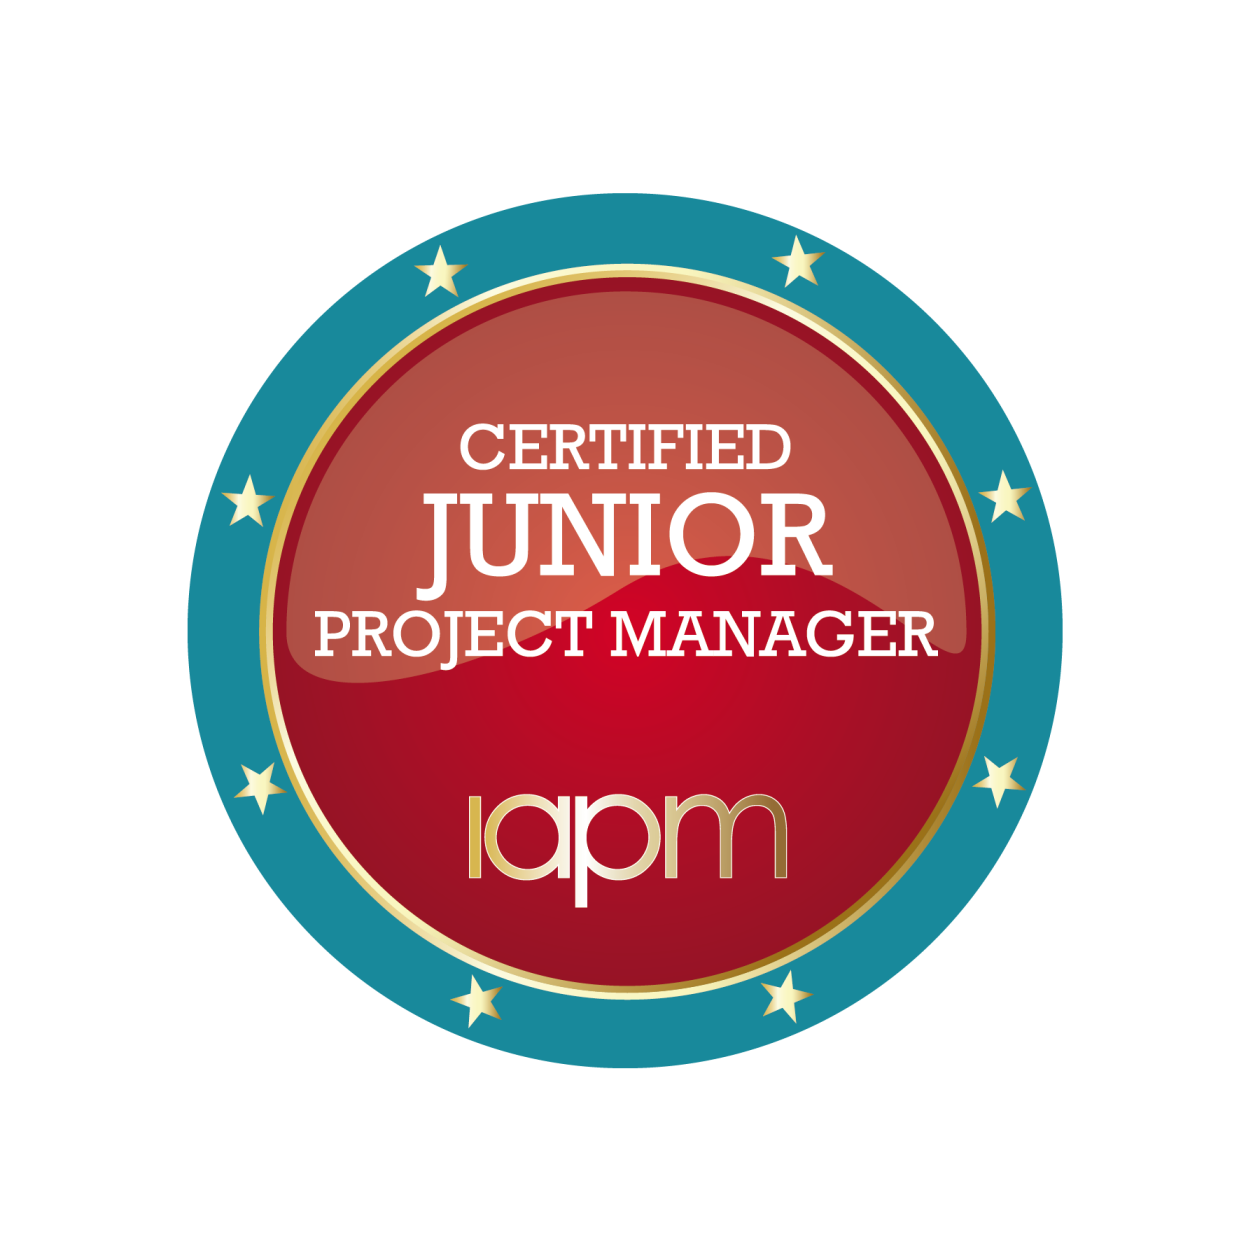 All information about the Certified Junior Project Manager (IAPM) certification